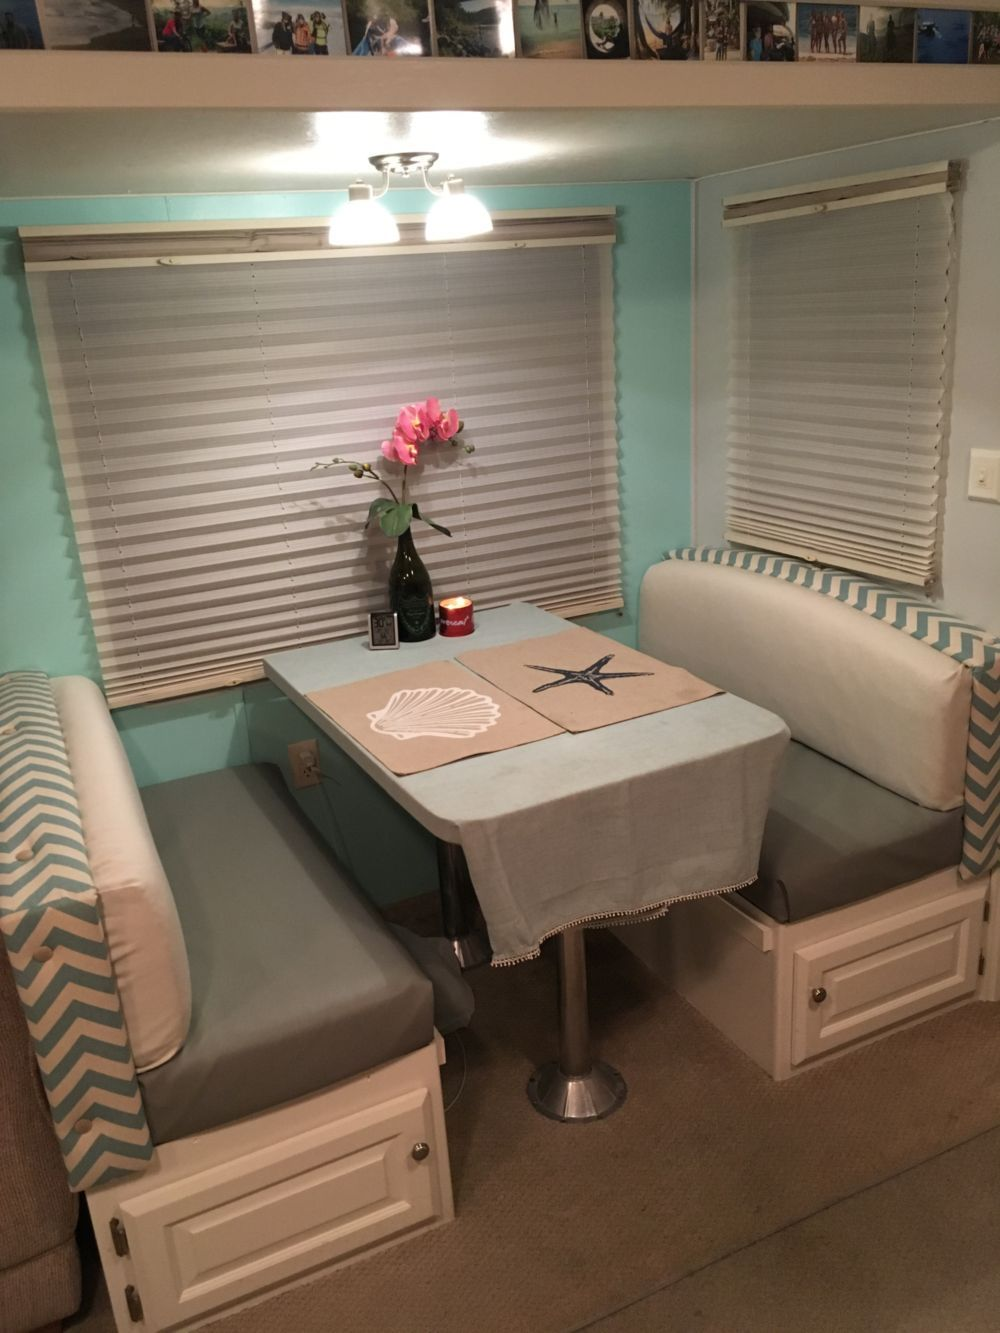 Awesome 31 excellent ideas to decorating rv interior https for Design makeover